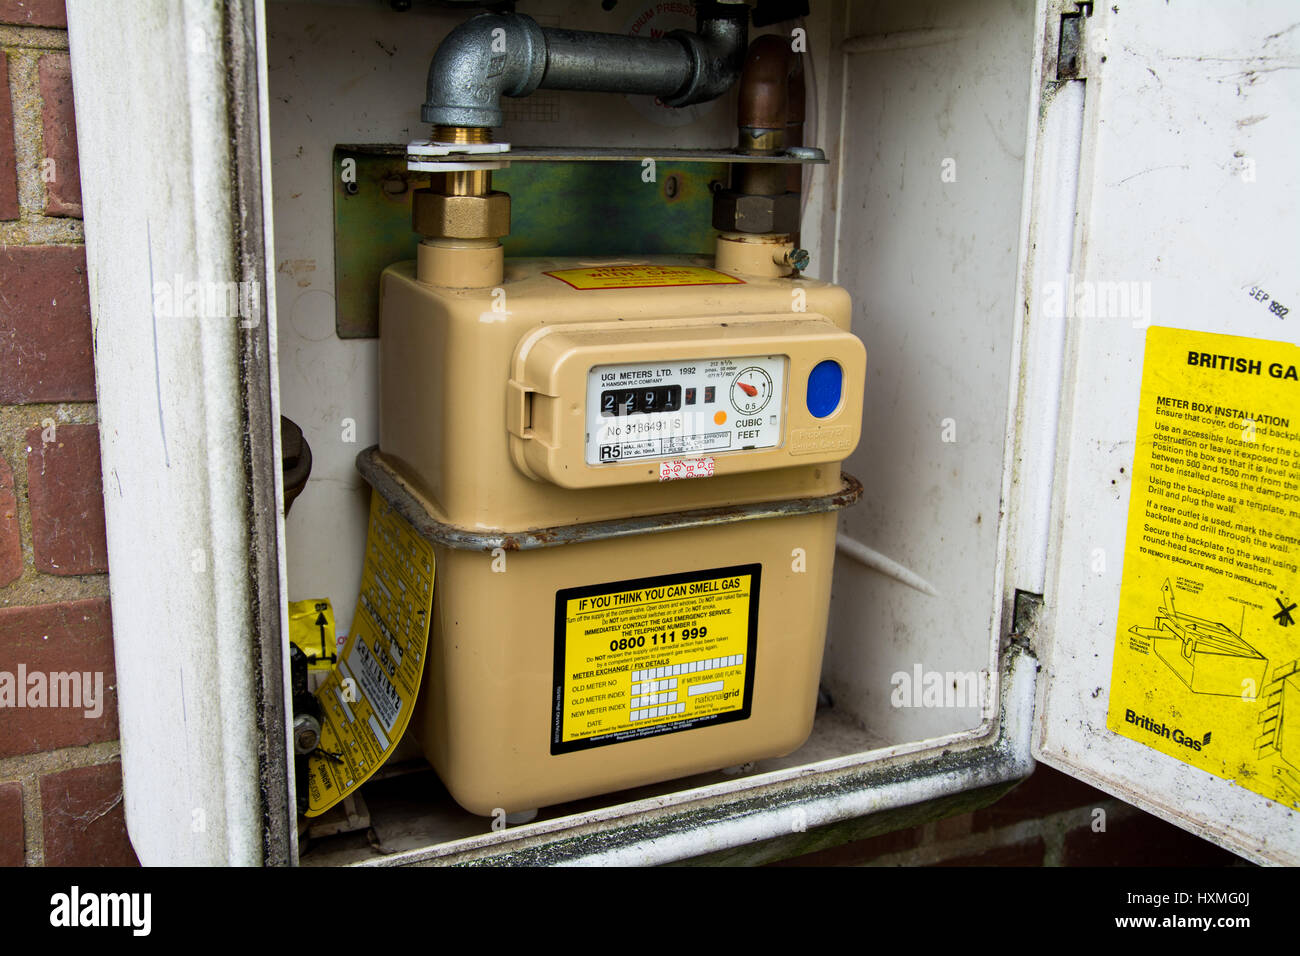 Taking a gas meter reading in the UK. - Stock Image